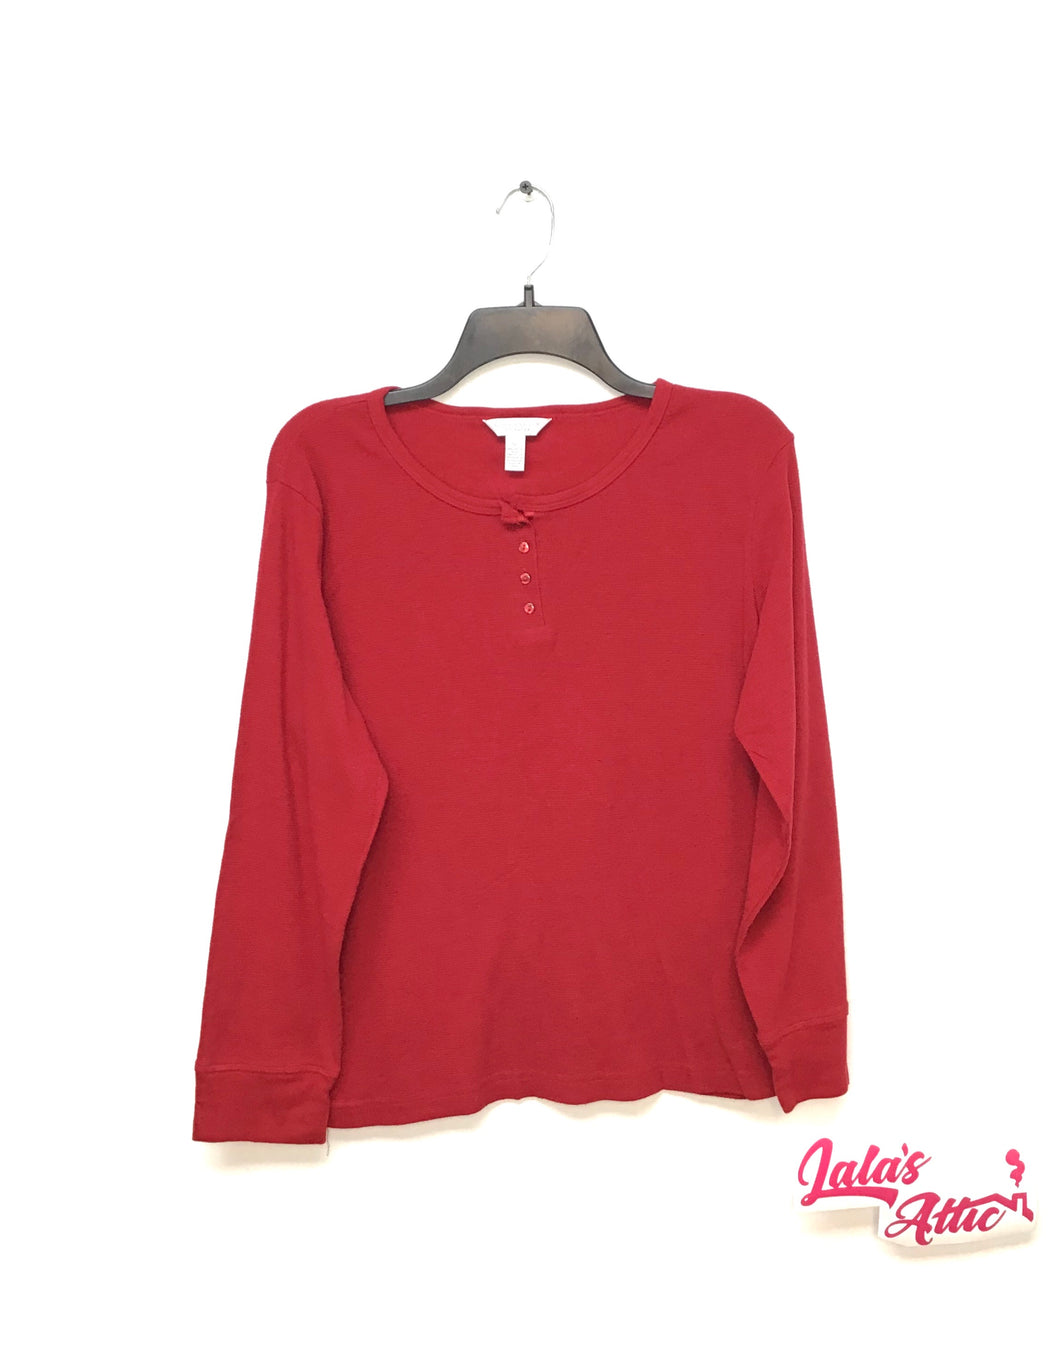 CHARTER CLUB INTIMATES LONG-SLEEVE